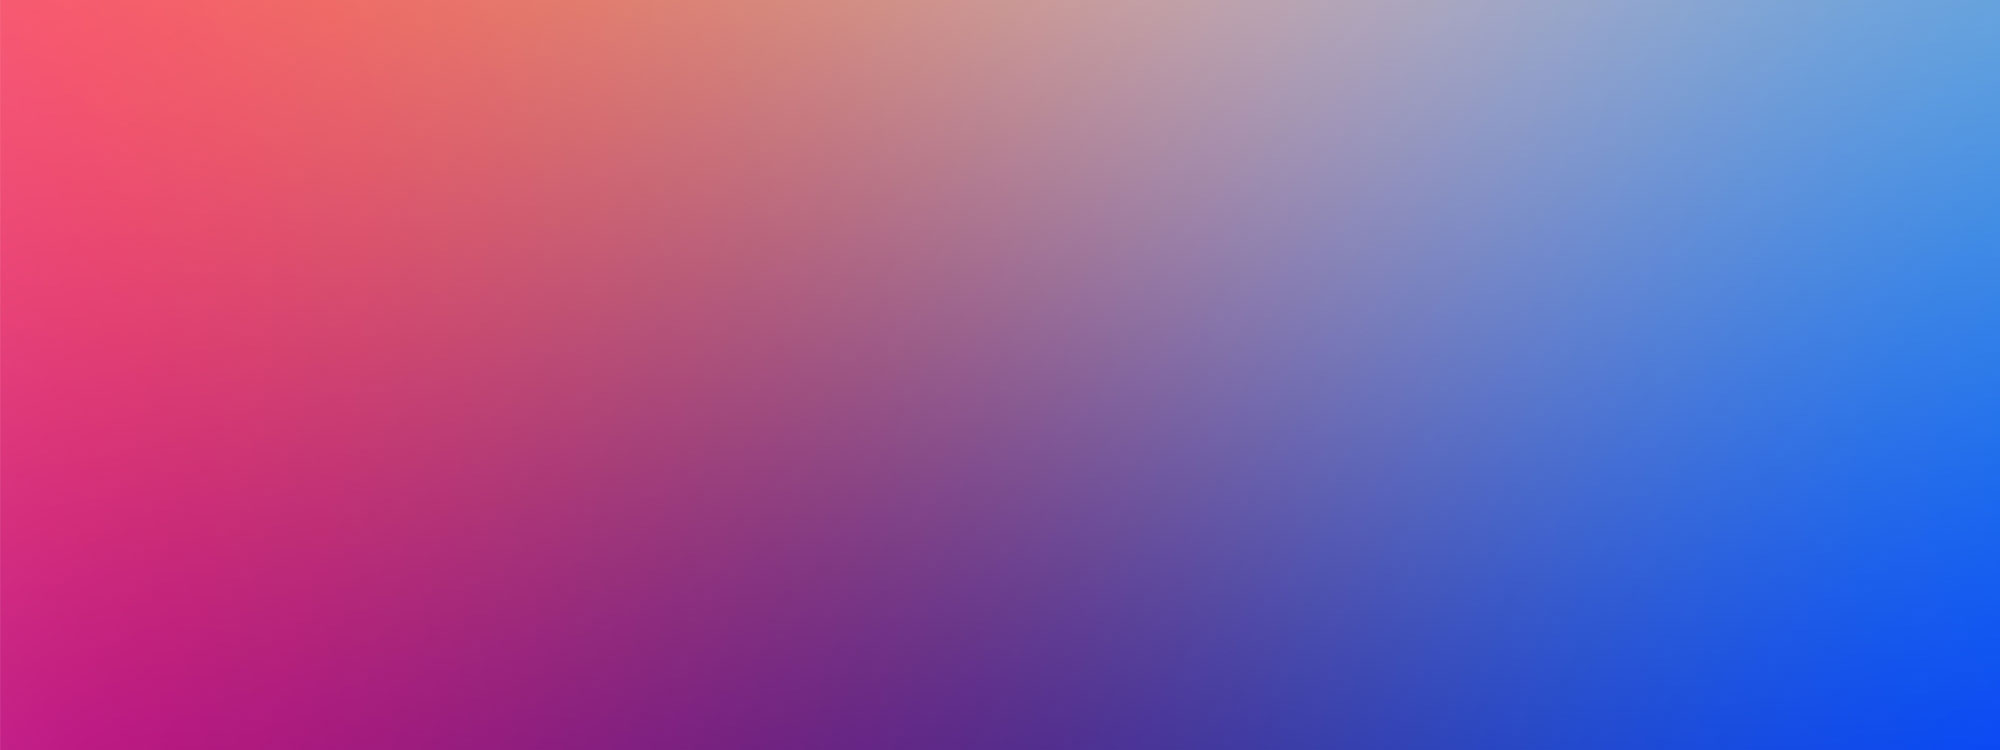 Blur_Background_October_2017_01